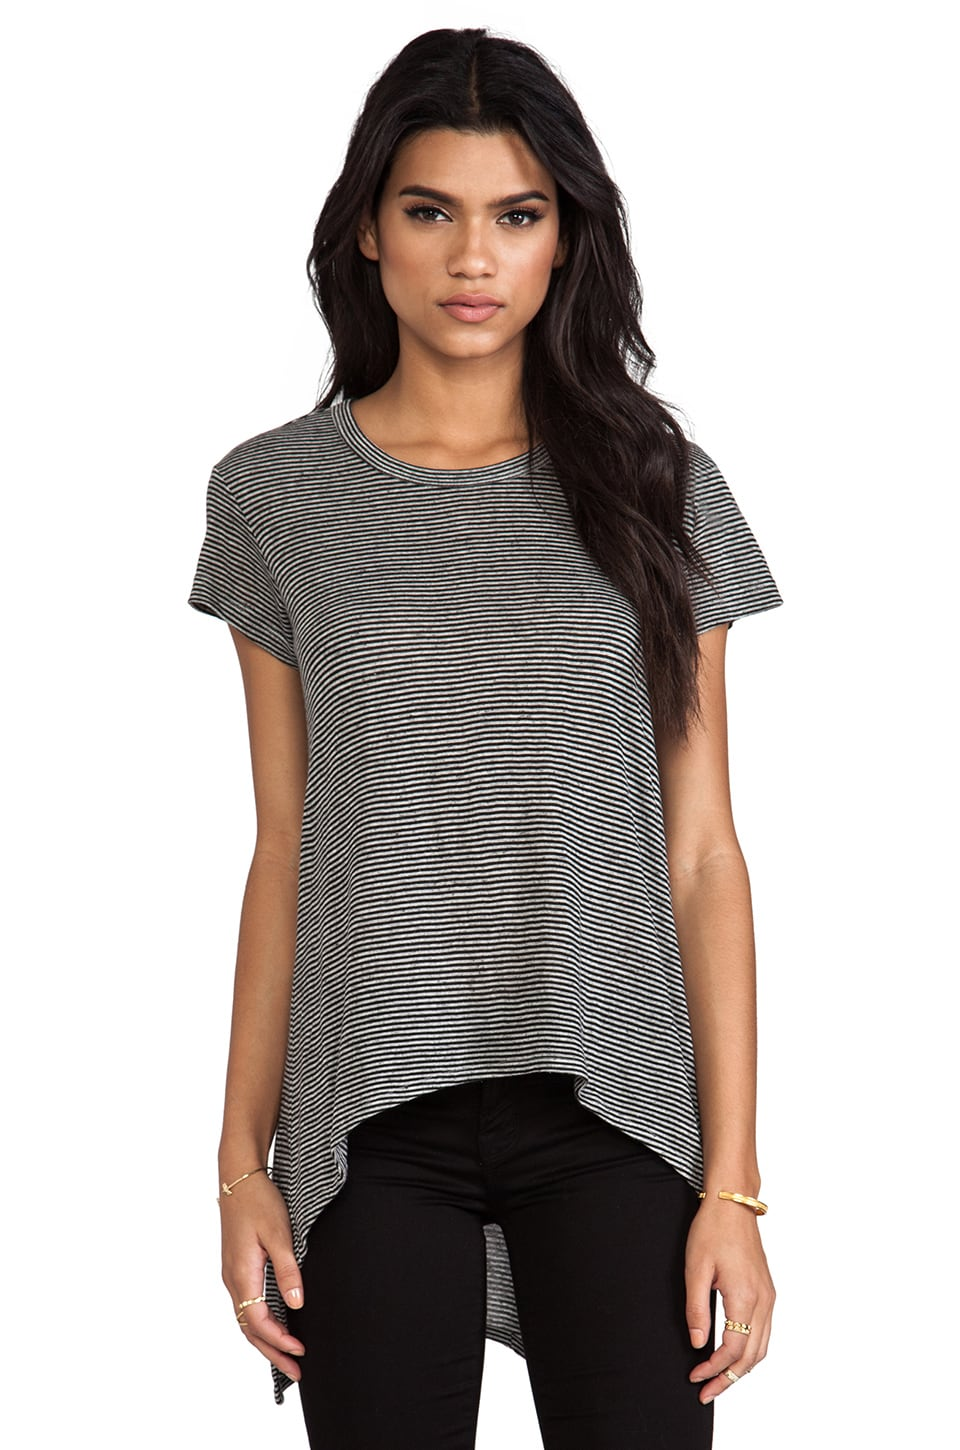 Wilt Shrunken Boyfriend Tee in Grey Heather Black Stripe